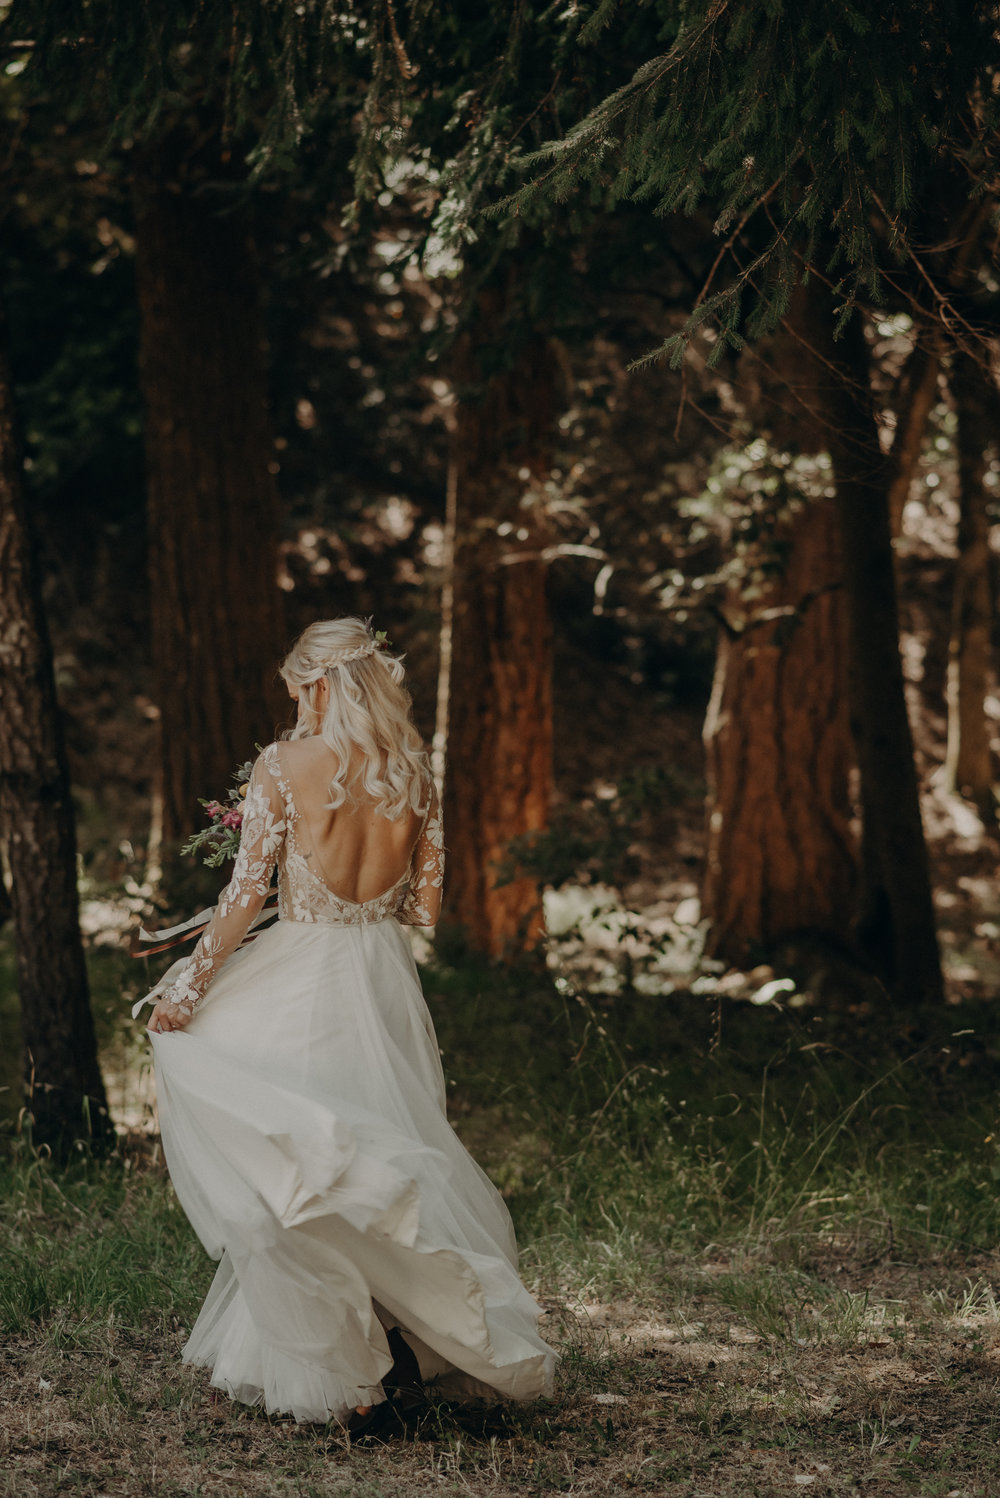 IsaiahAndTaylor.com - California Destination Elopement, Lake Leonard Reserve Wedding, Ukiah-044.jpg